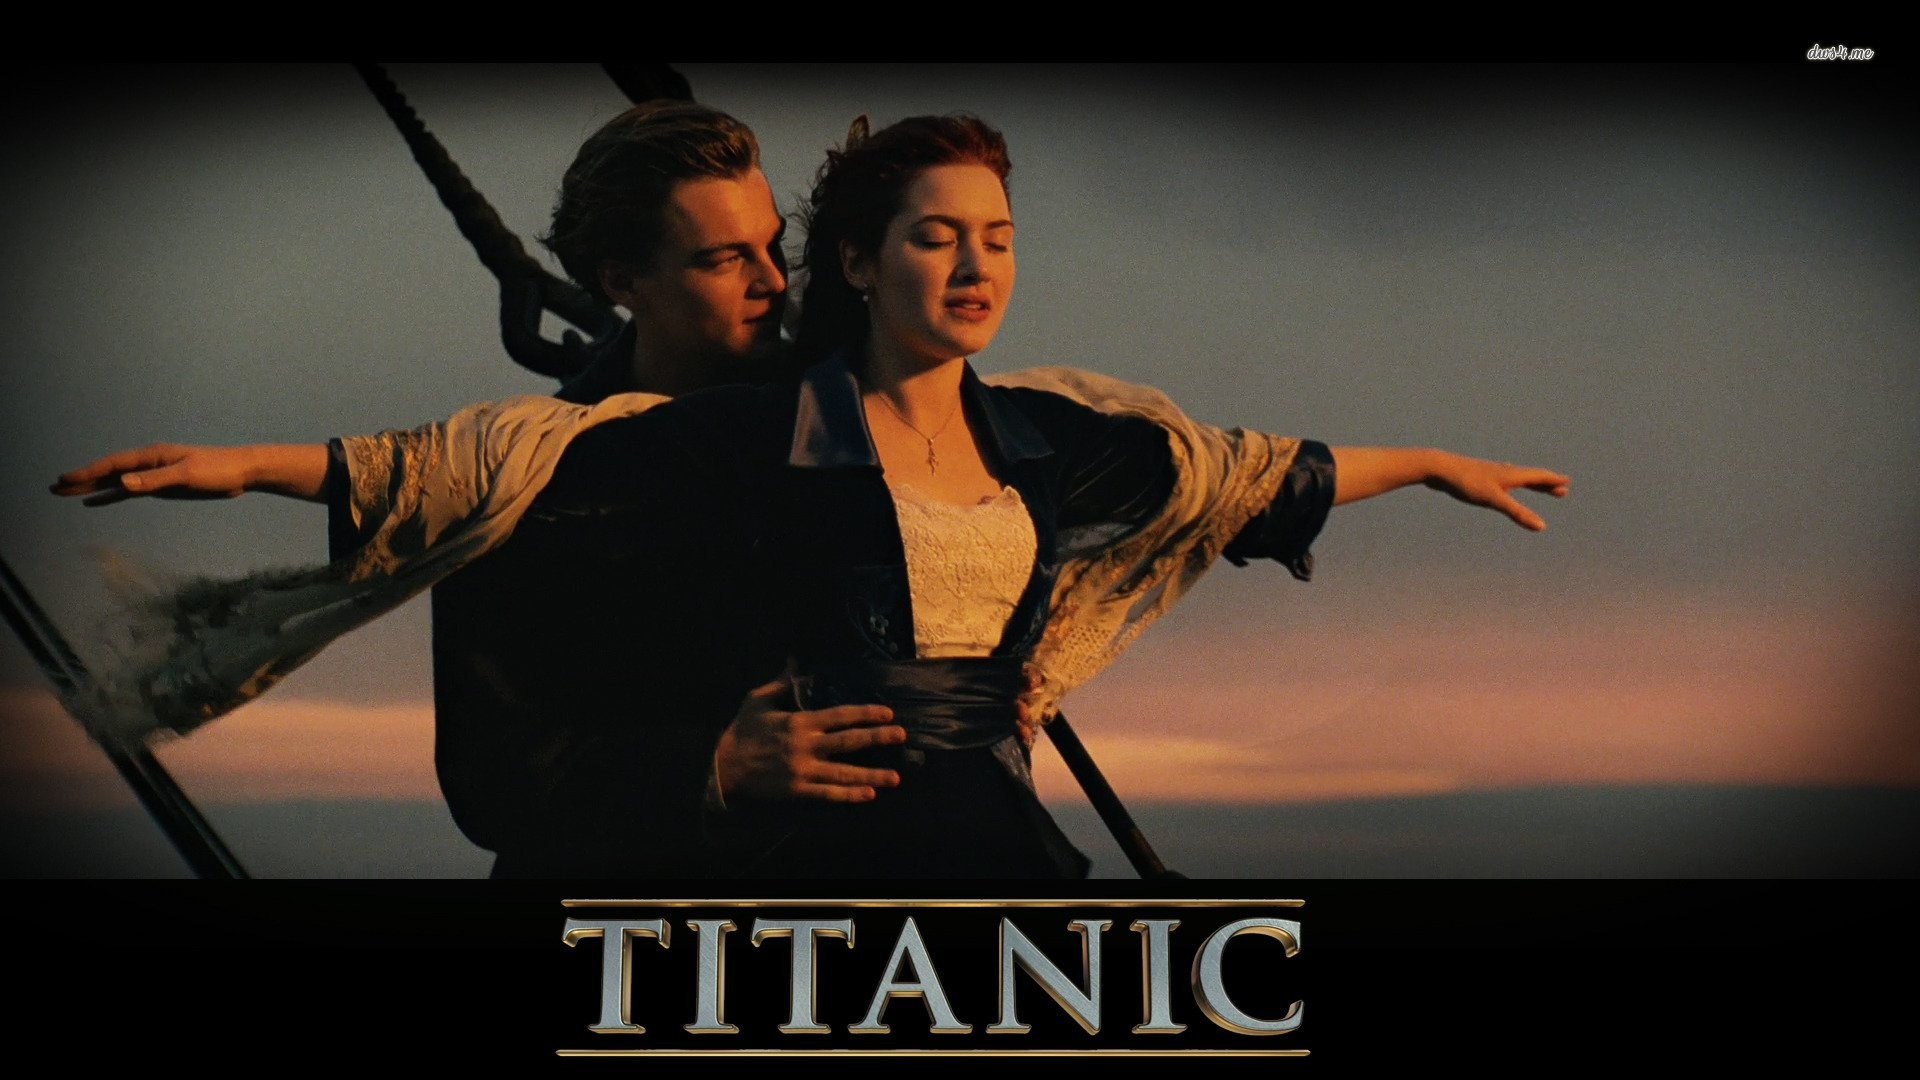 Titanic 439253. SHARE. TAGS: Kate Winslet …